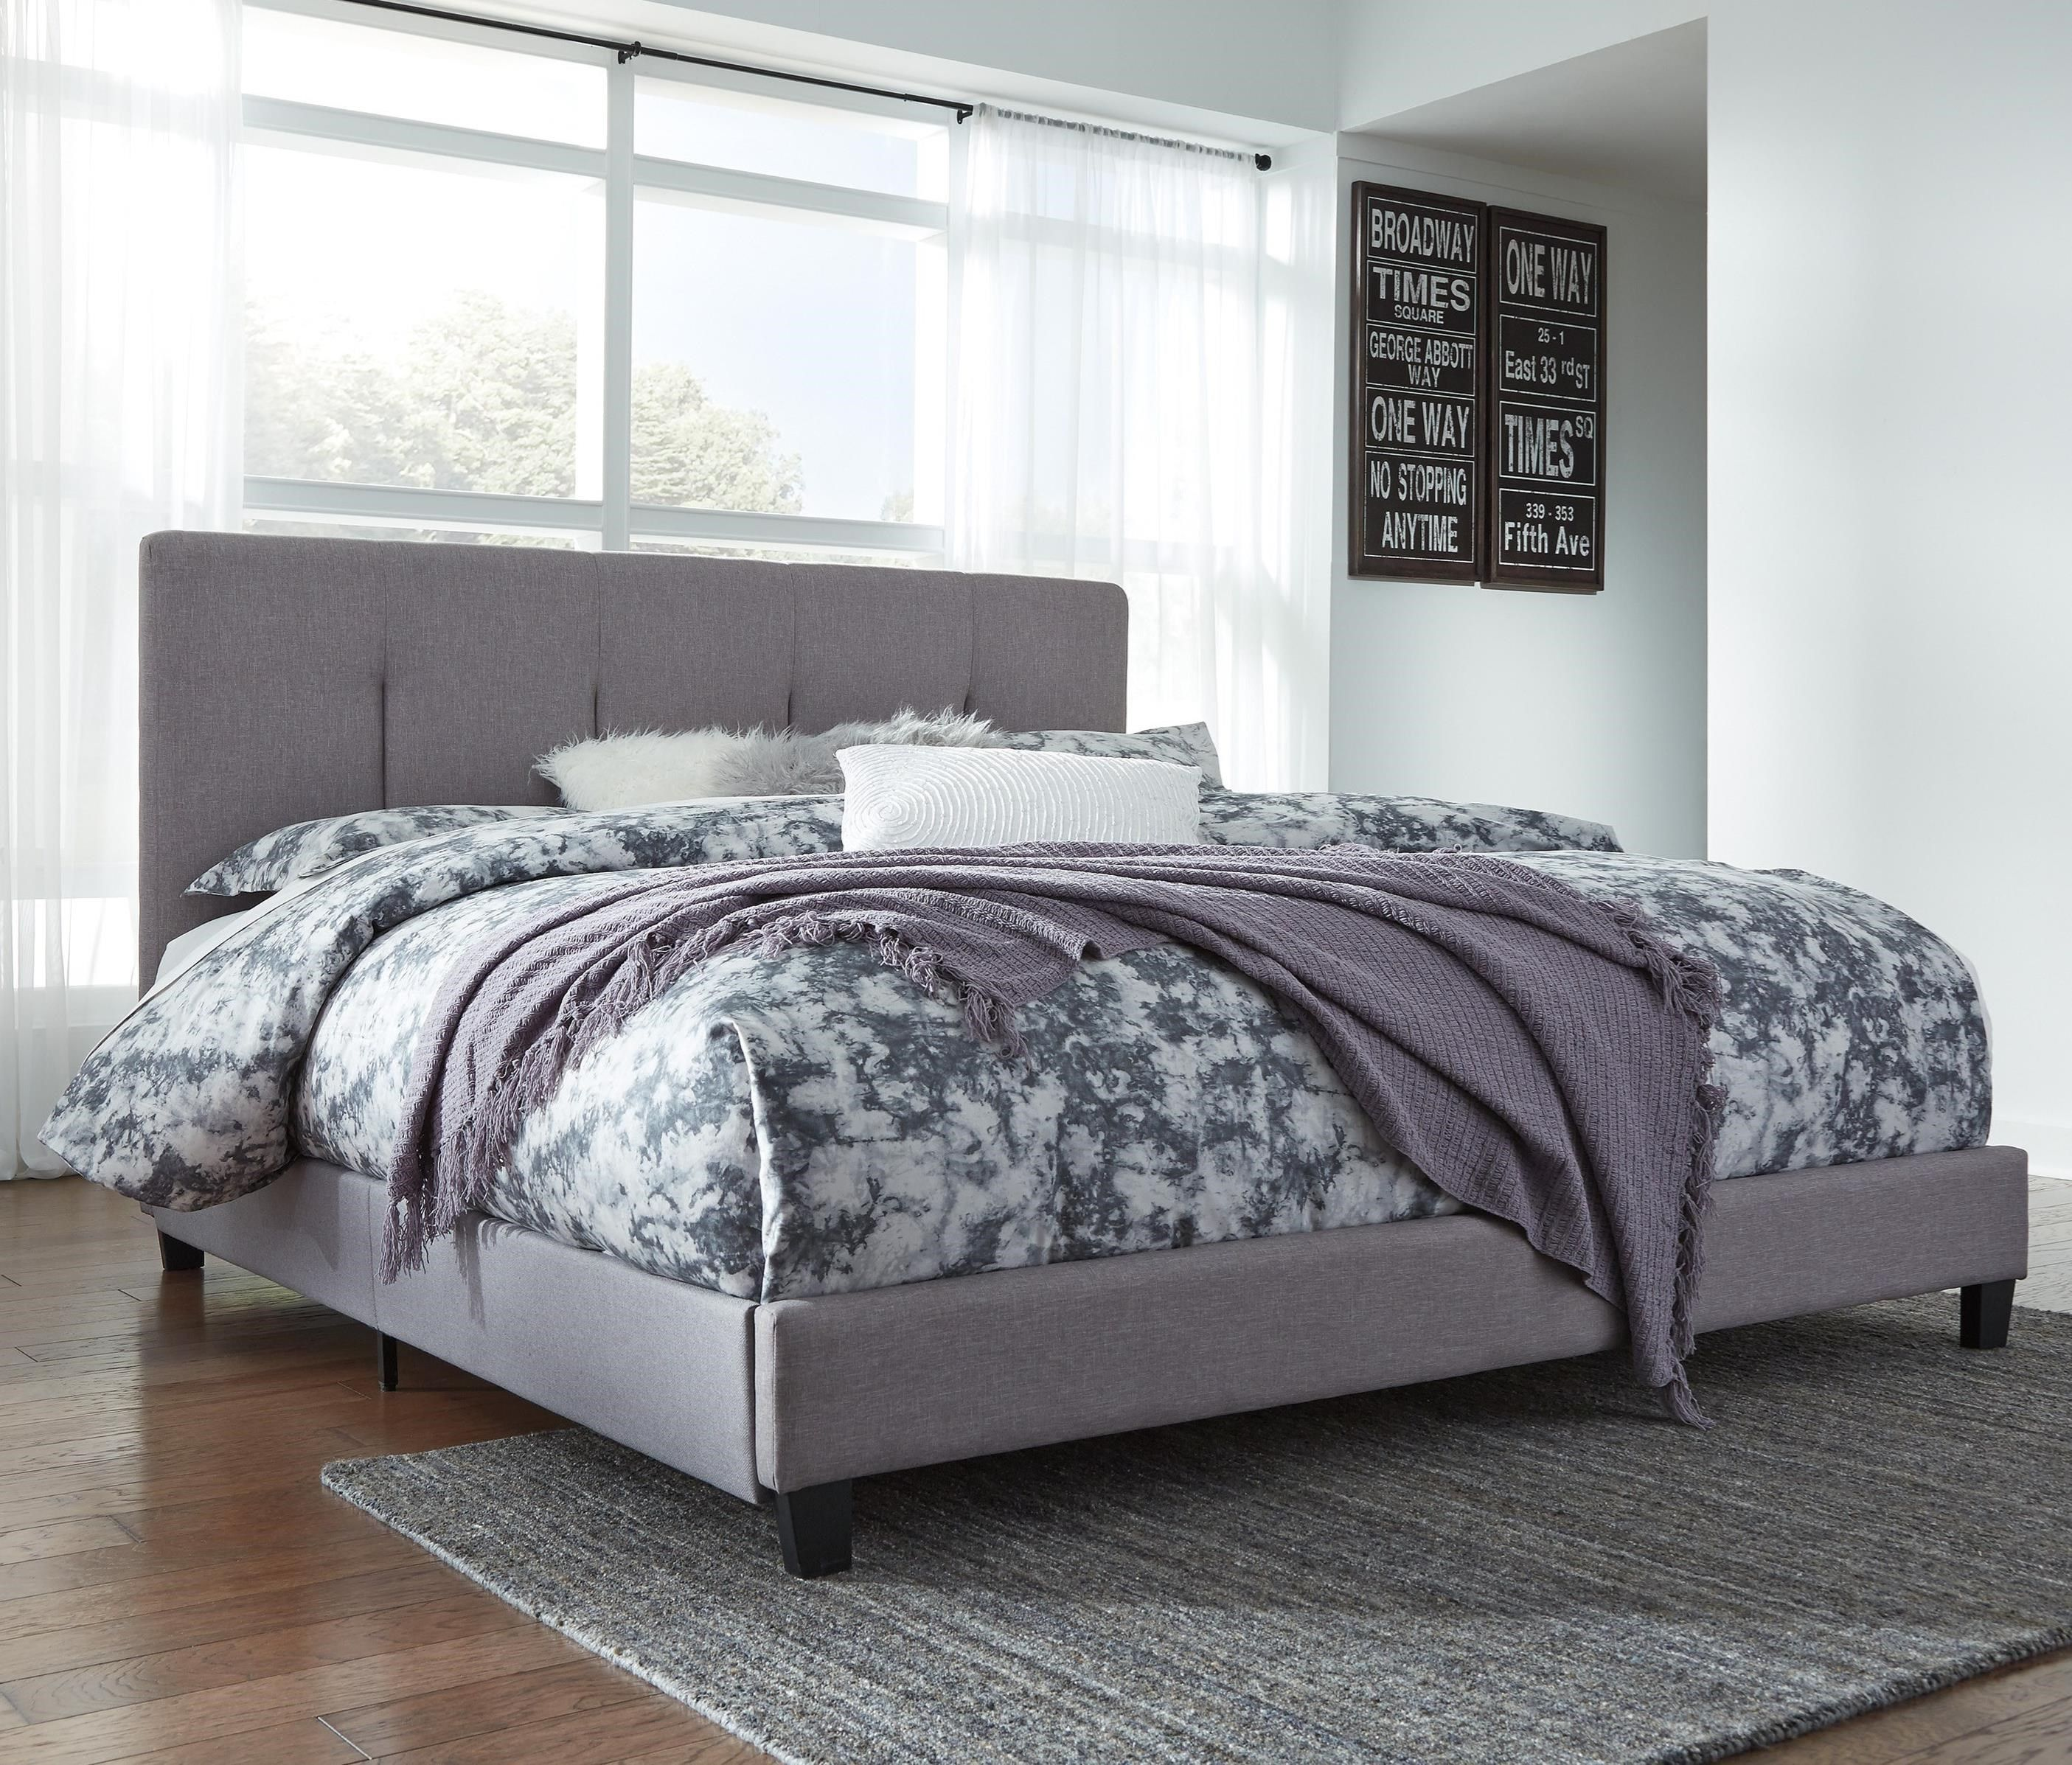 Dolante King Upholstered Bed with Channel Tufting & Gray